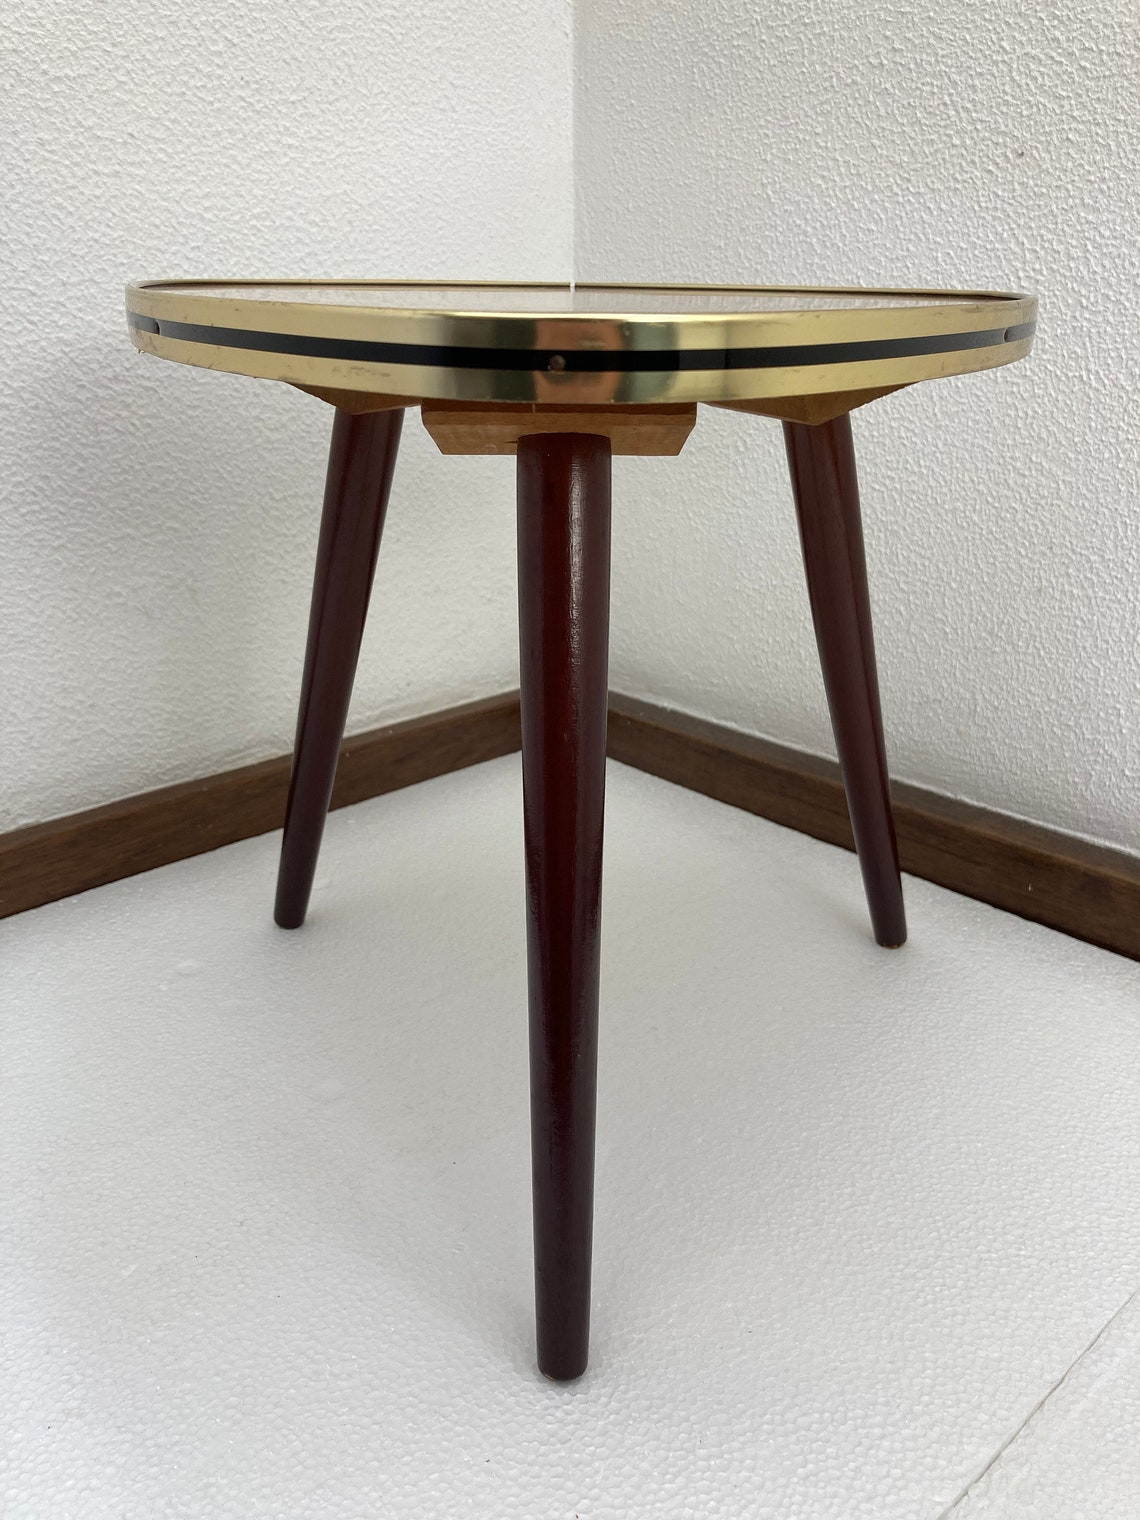 Vintage Midcentury Formica Site Table - Plant Stand - Tripod - 50's / 60's